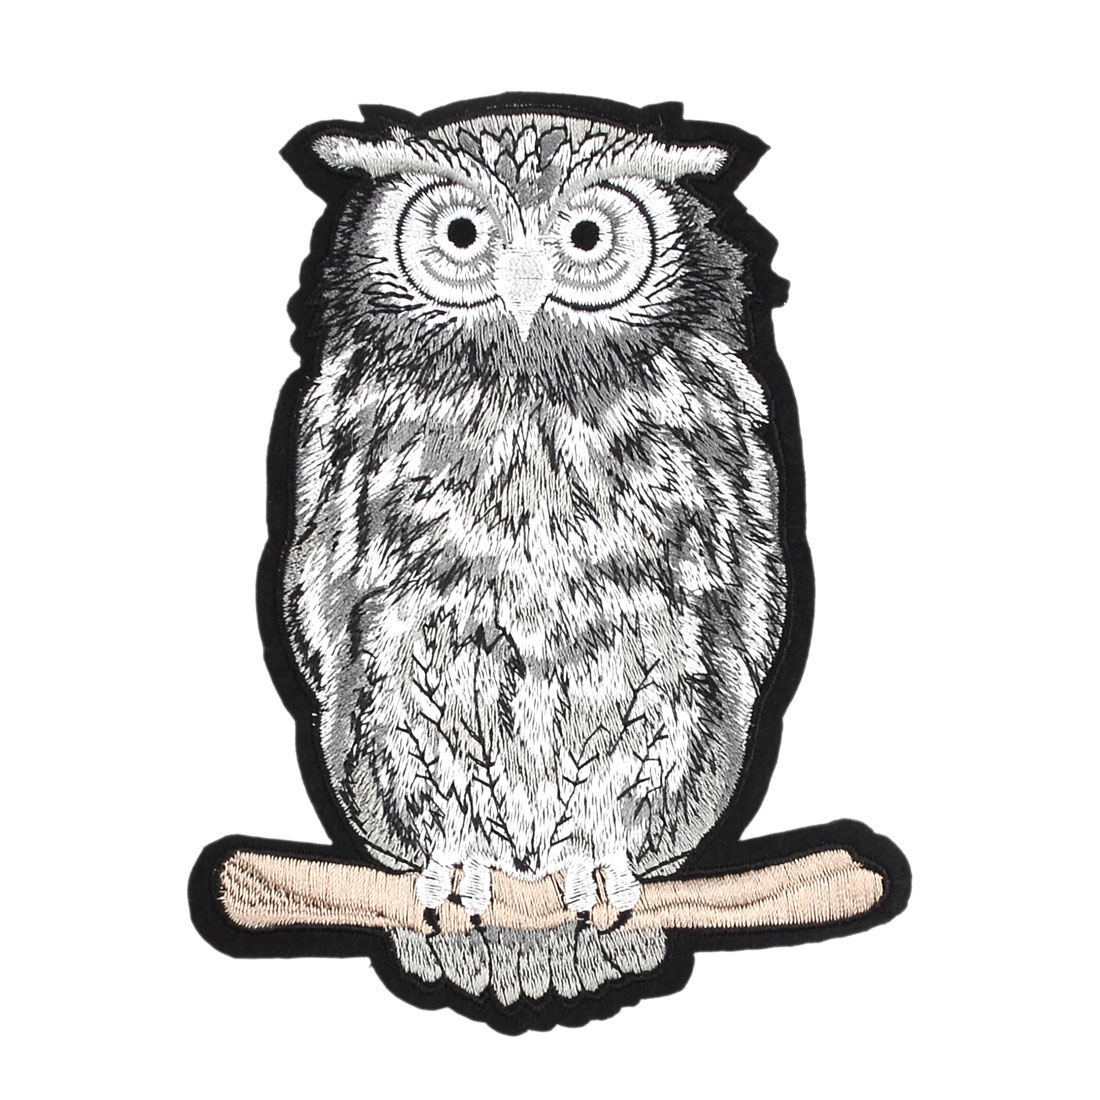 Unique Bargains Household Polyester Owl Shape DIY Sewing Clothes Patch Decor Lace Applique Black